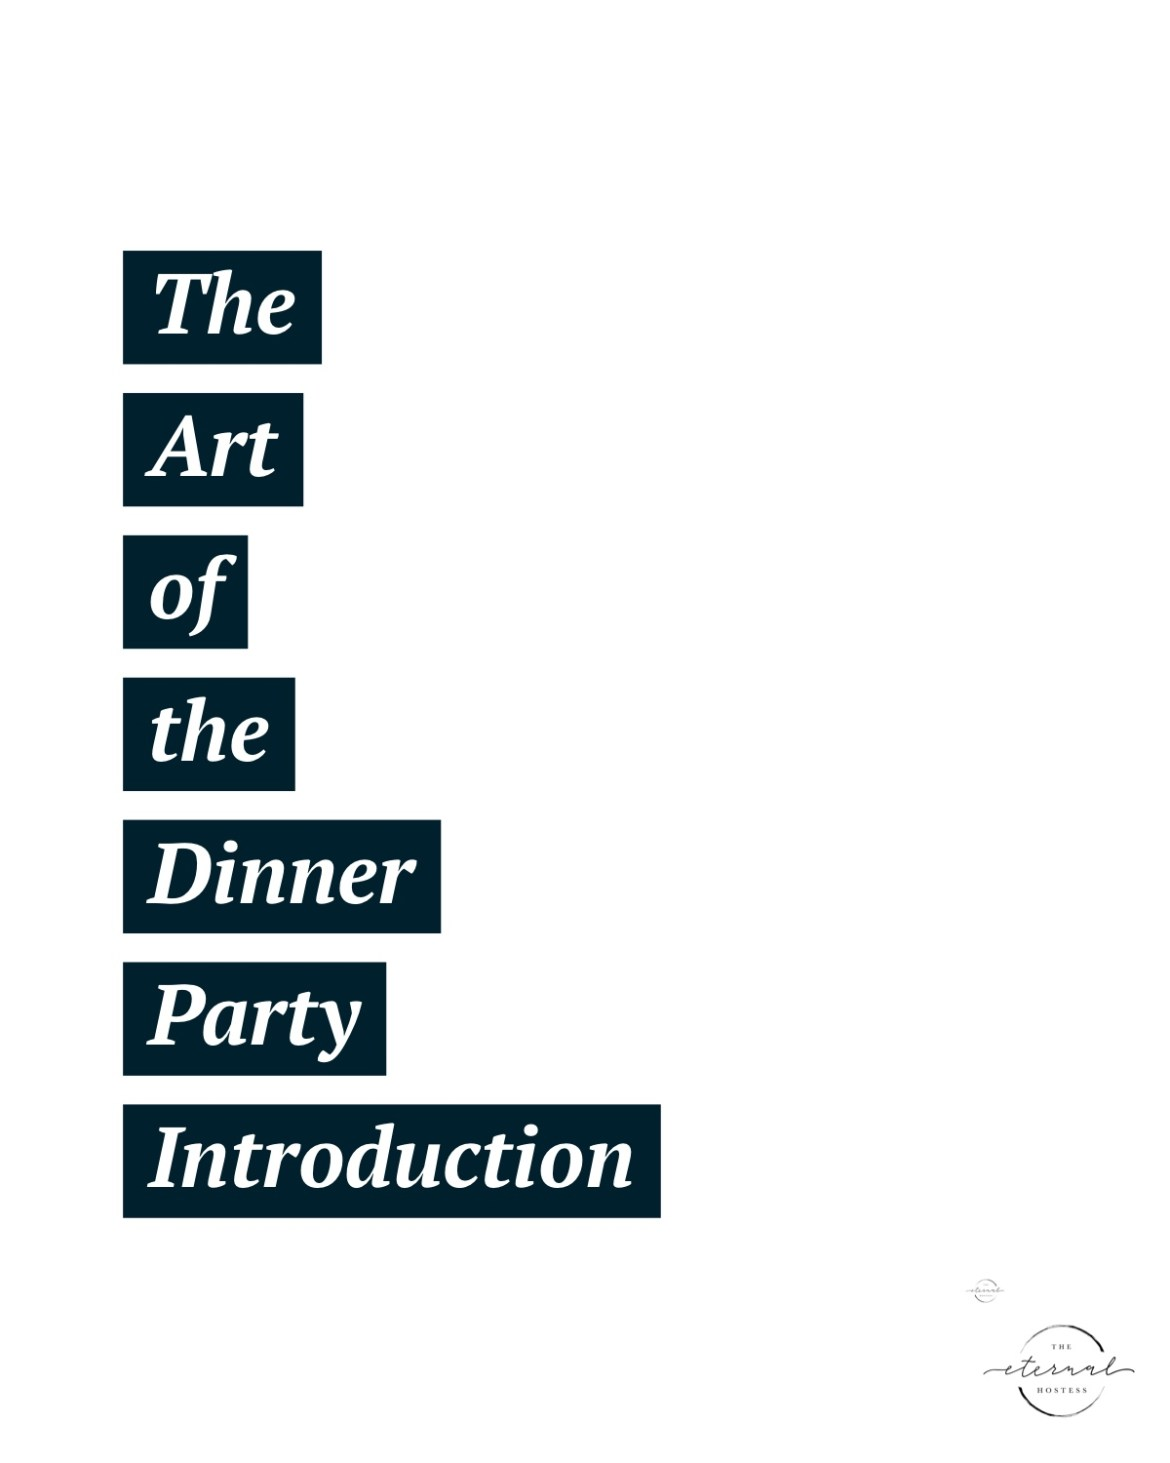 The Art of the Dinner Party Introduction